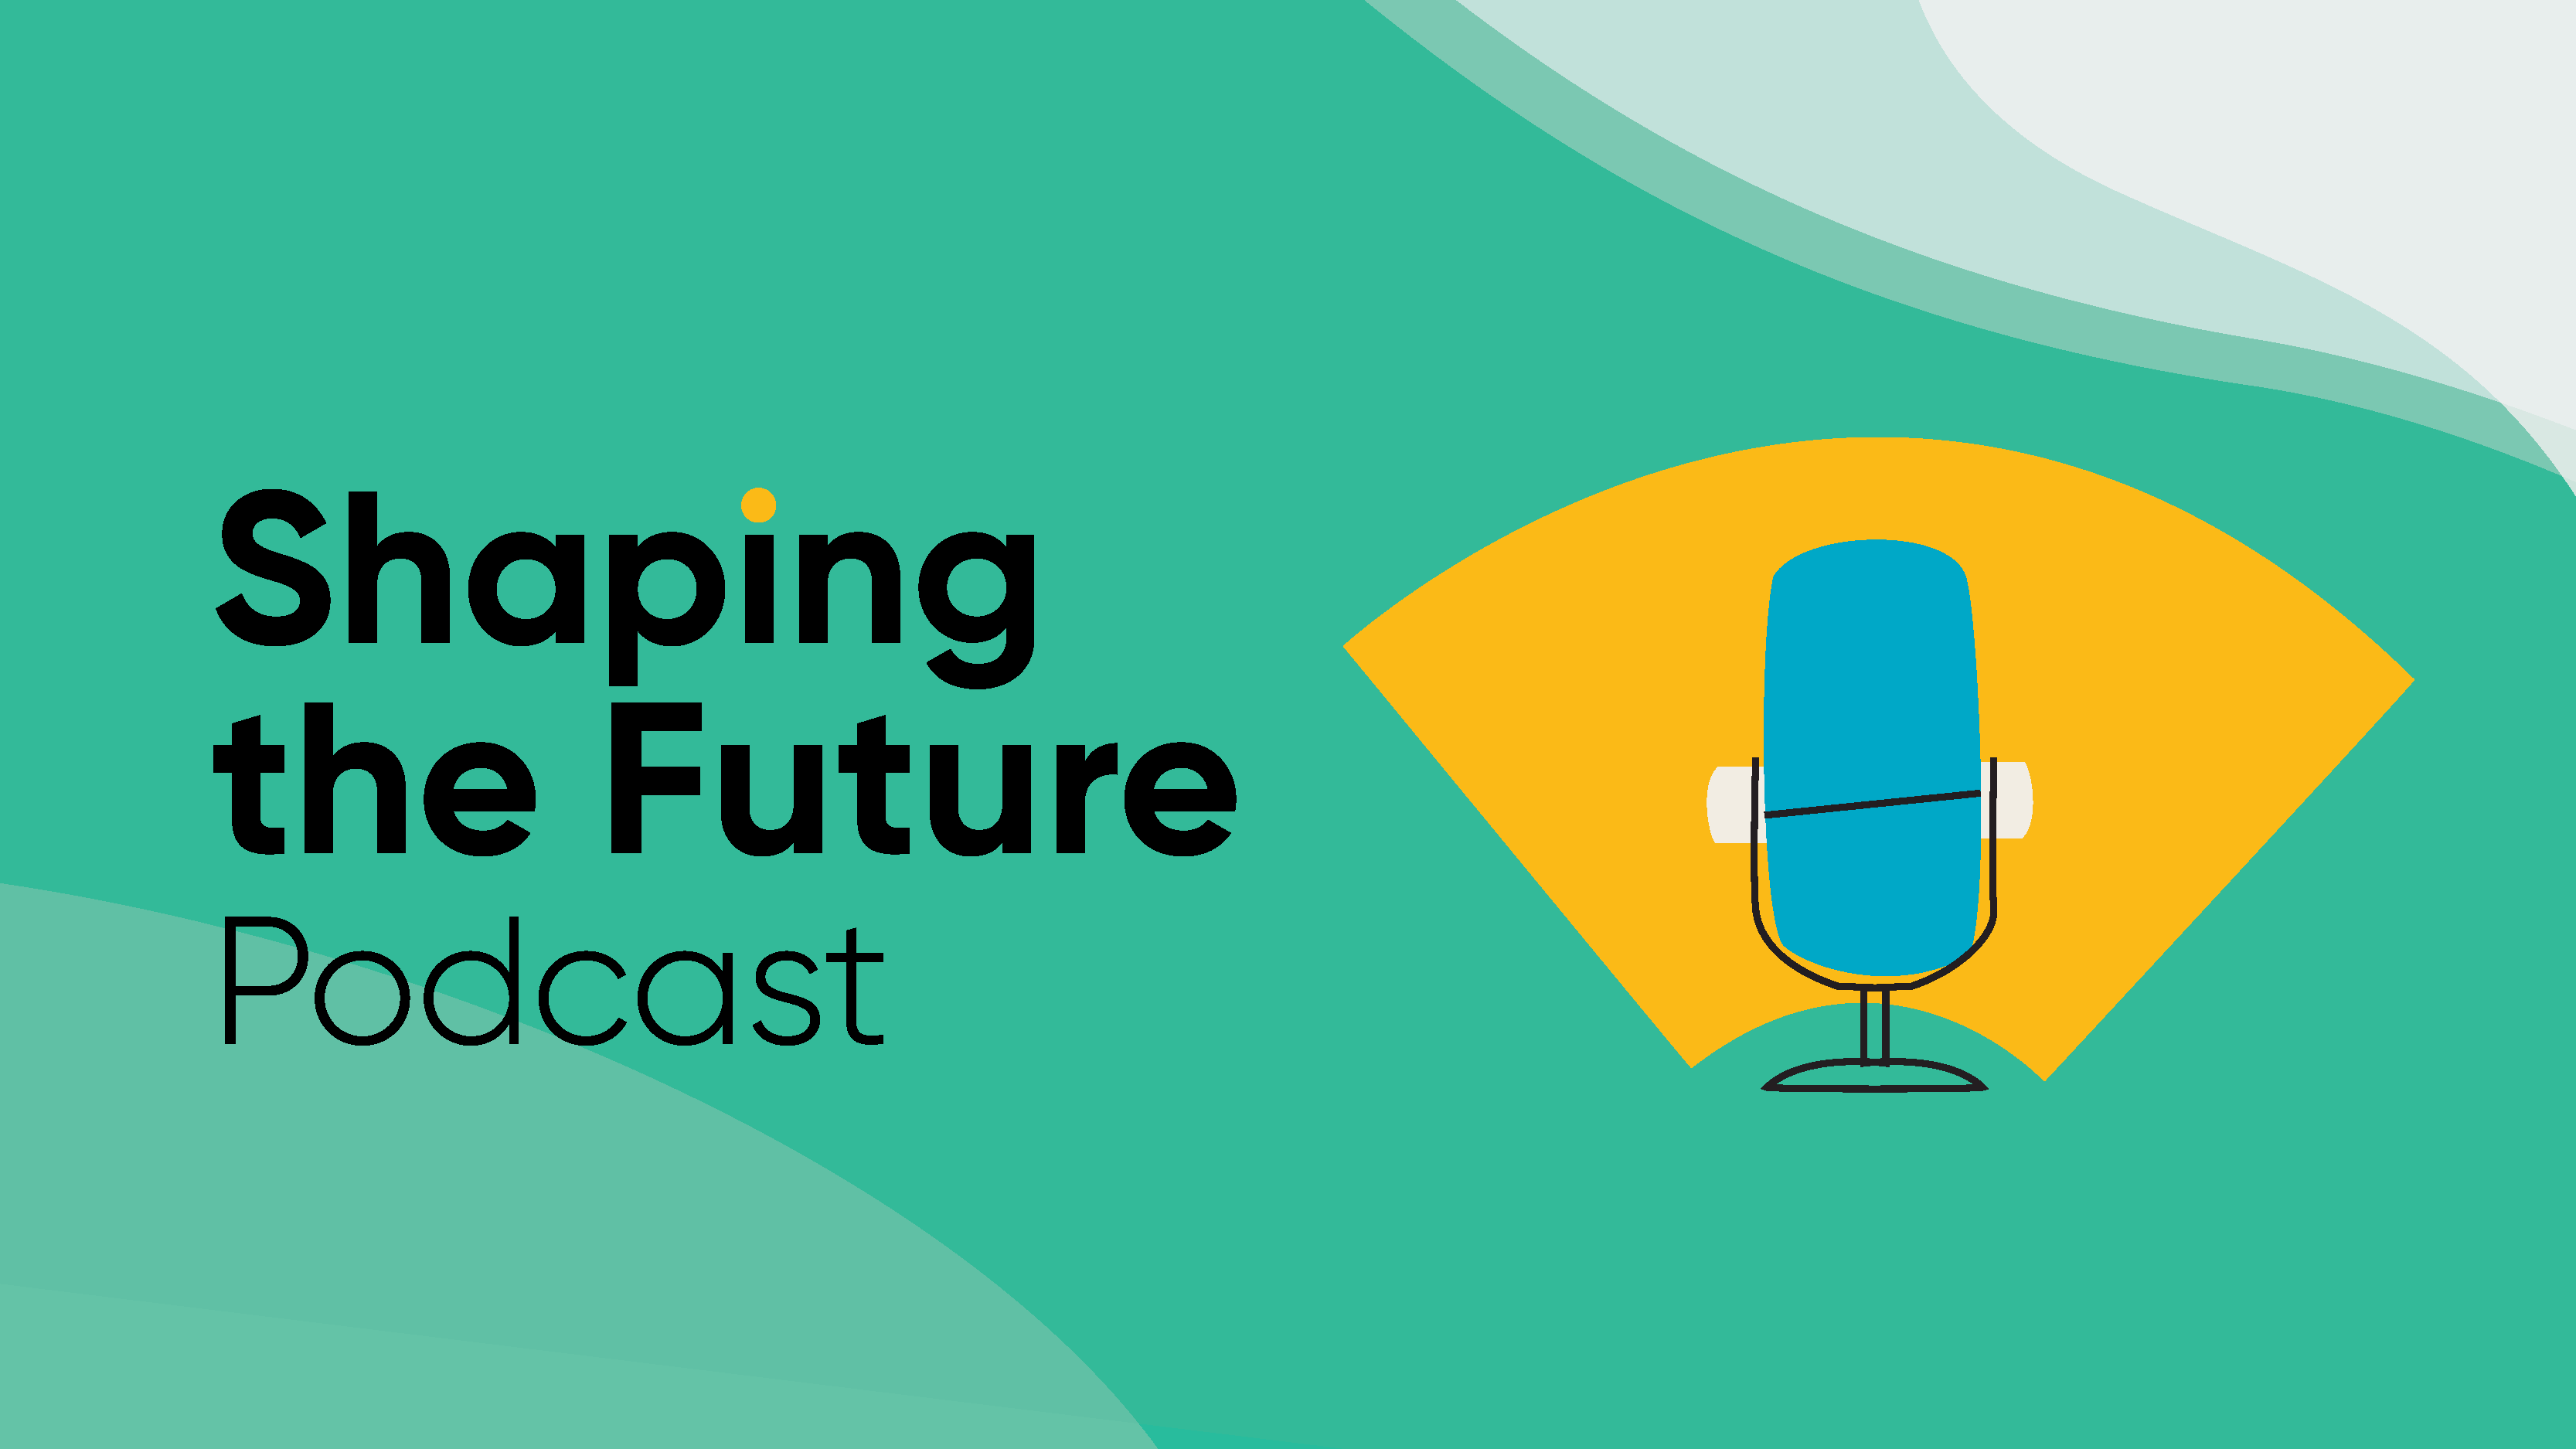 Podcast: Shaping the Future Season 2